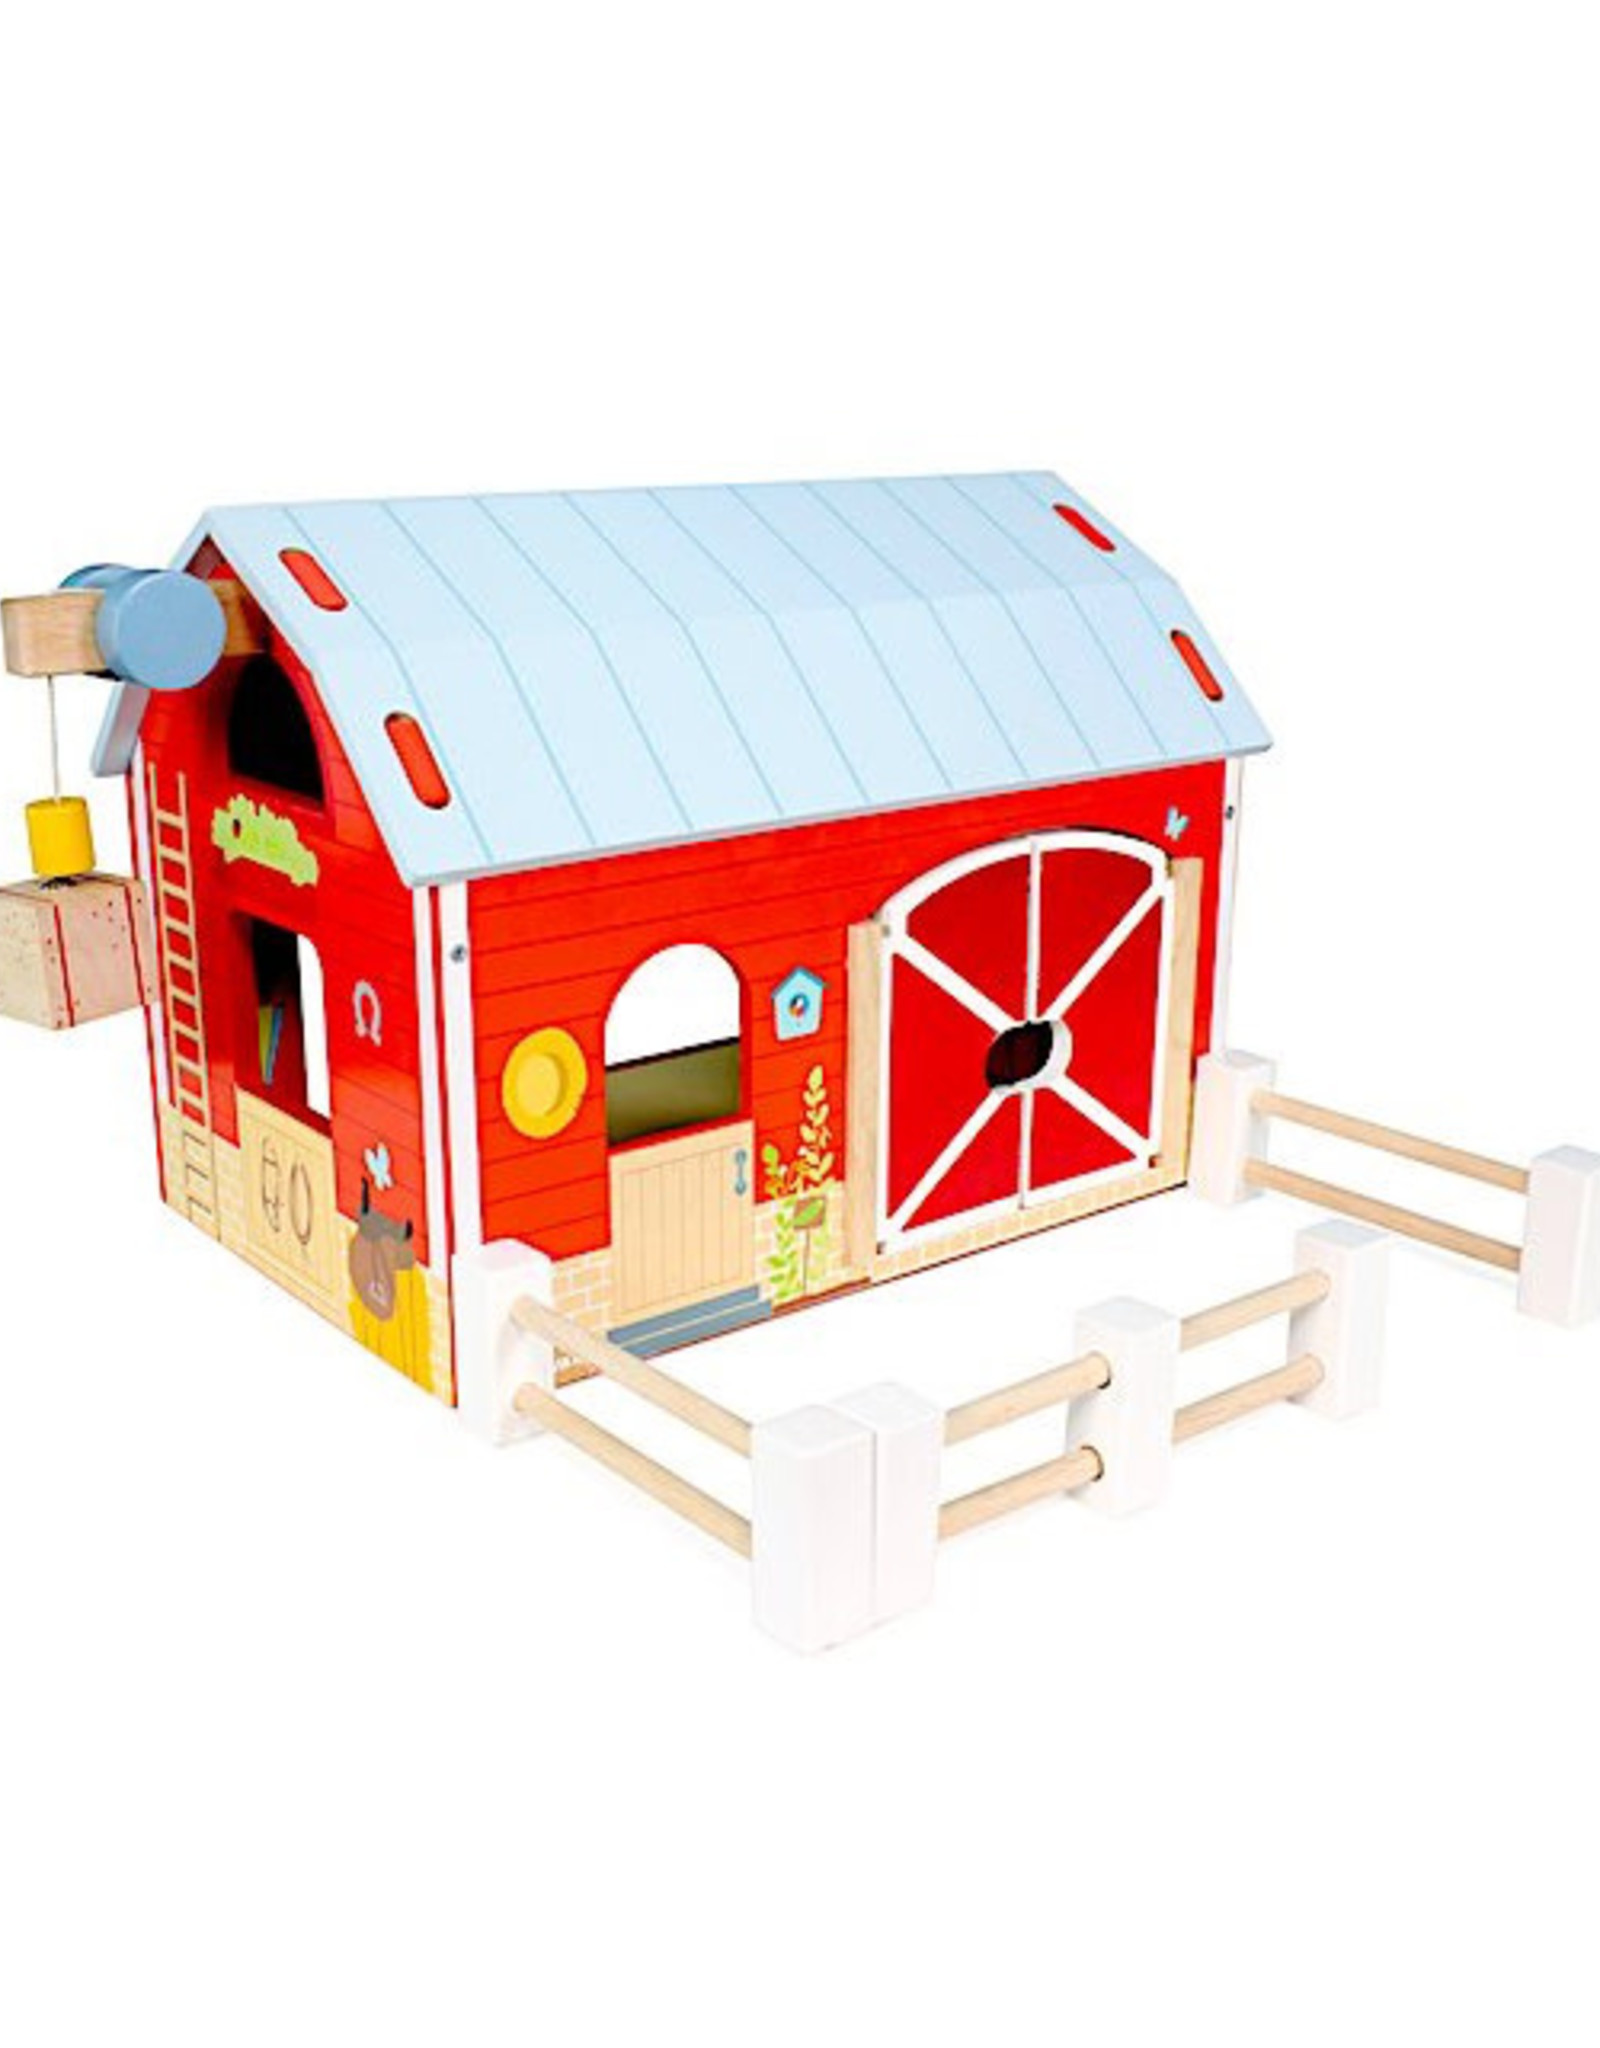 Le Toy Van The Red Barn